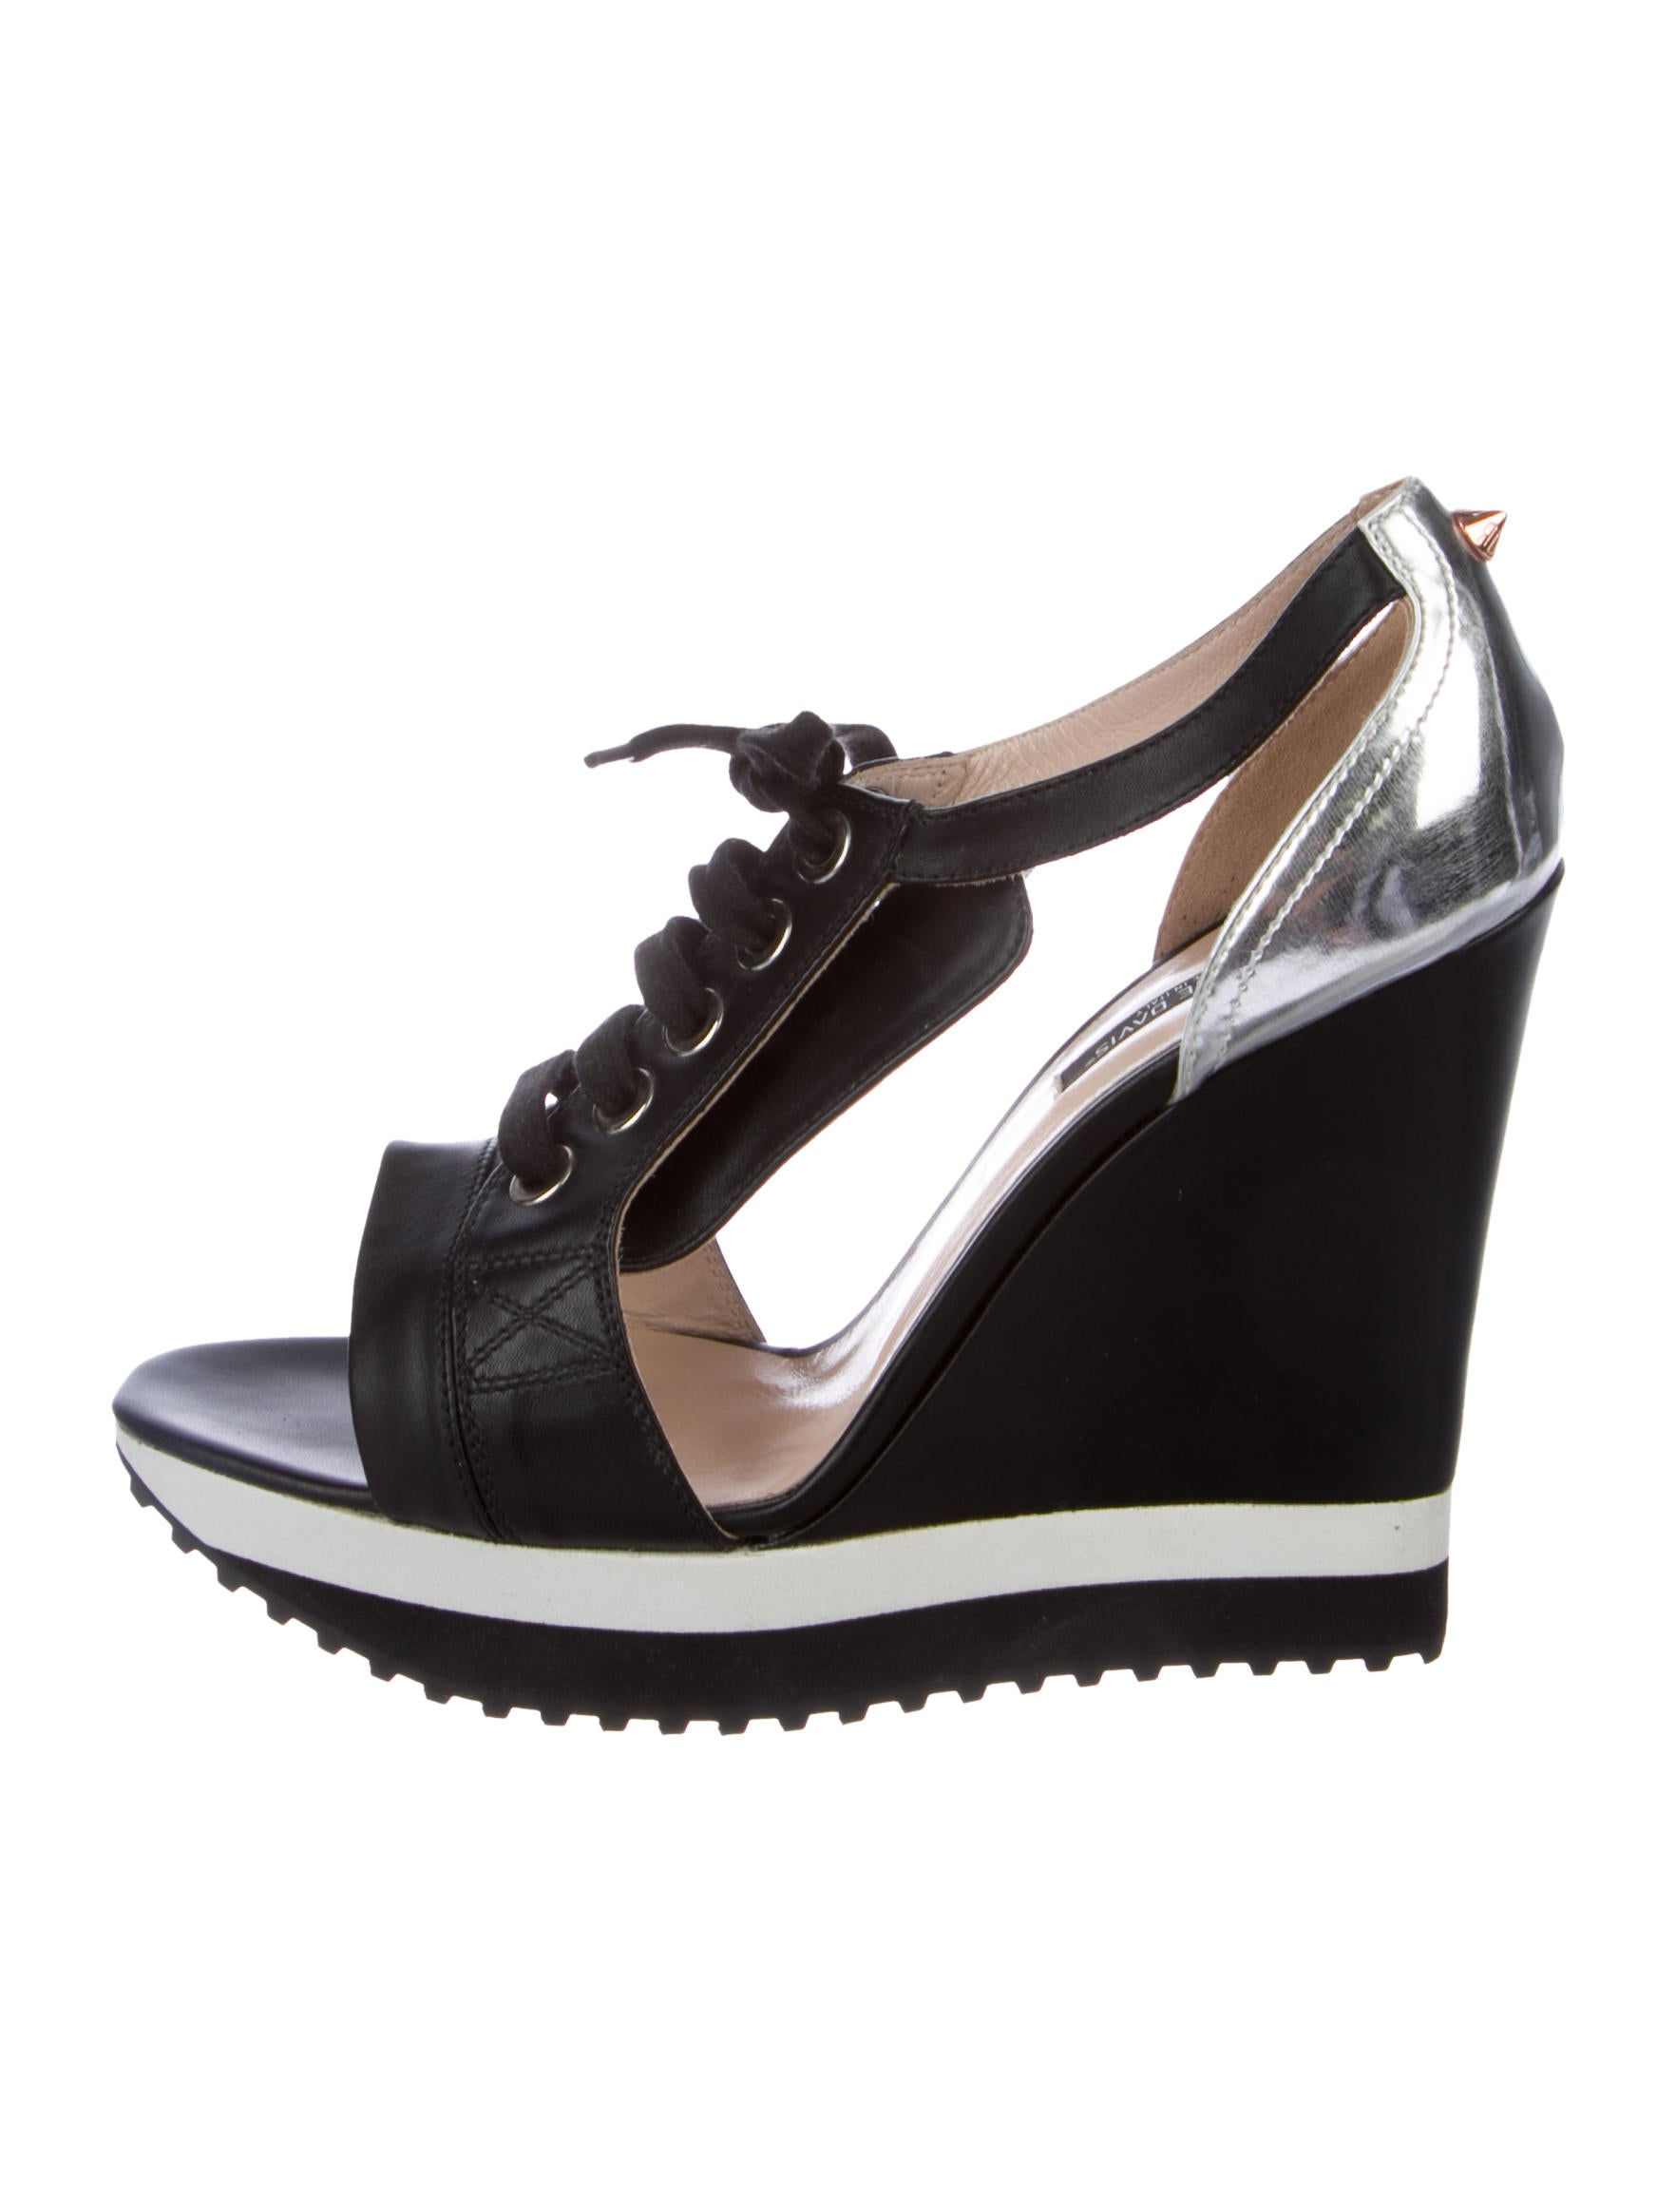 outlet best prices cheap sale top quality Ruthie Davis Cutout Leather Sneaker Wedges shop for for sale from china cheap price hot sale sale online hDbnyG